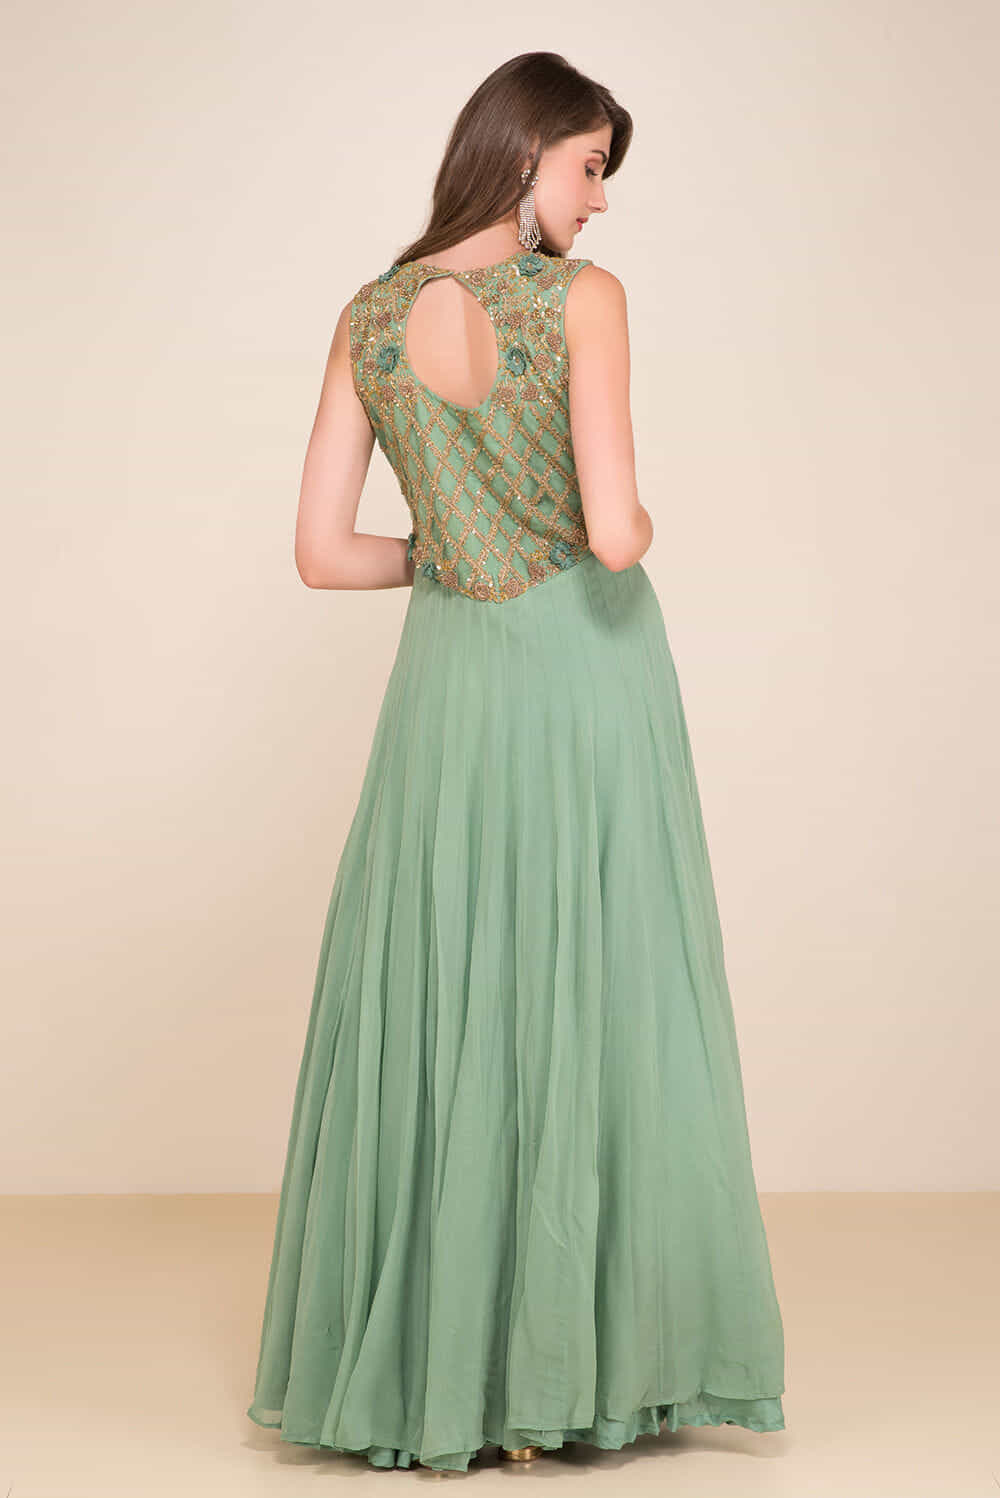 Rent HOUSE OF OMBRE - Olive Green Embroidered Gown